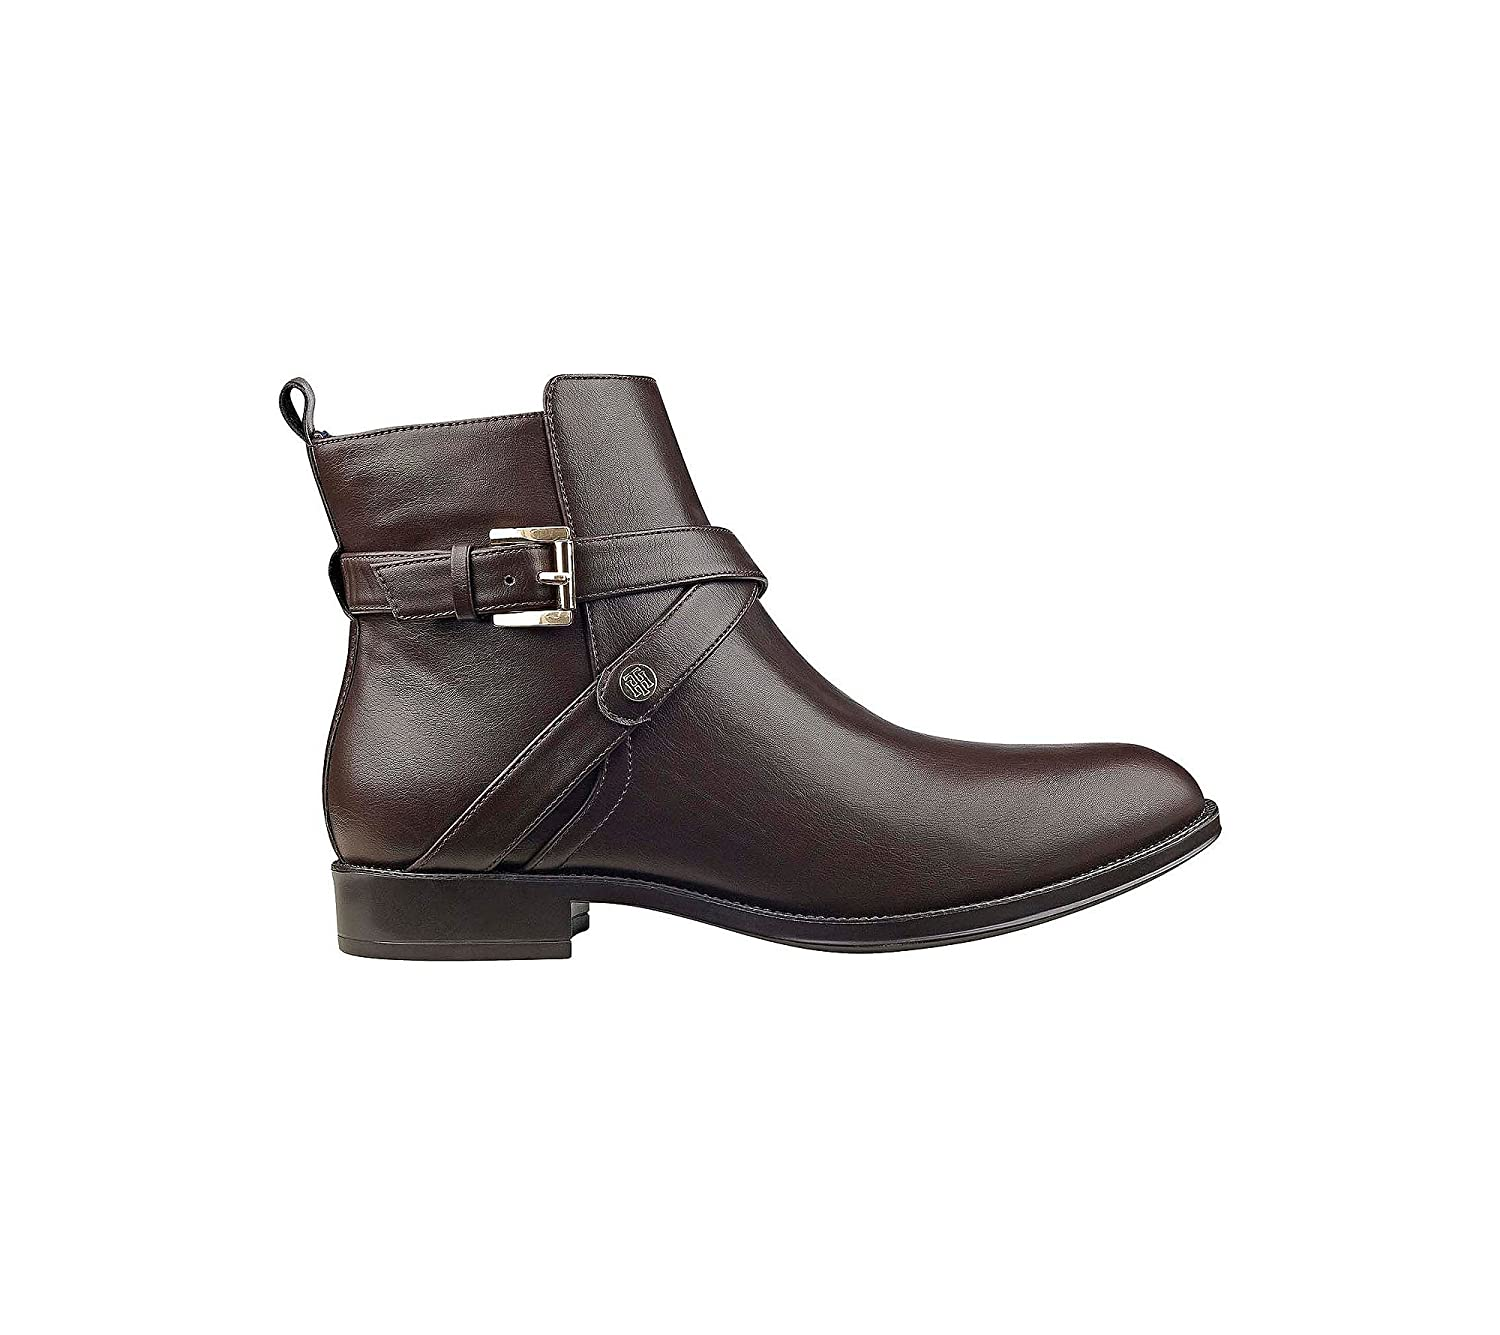 ff24c537d80bf Tommy Hilfiger Rambit Casual Booties Brown 5 M  Amazon.co.uk  Shoes   Bags